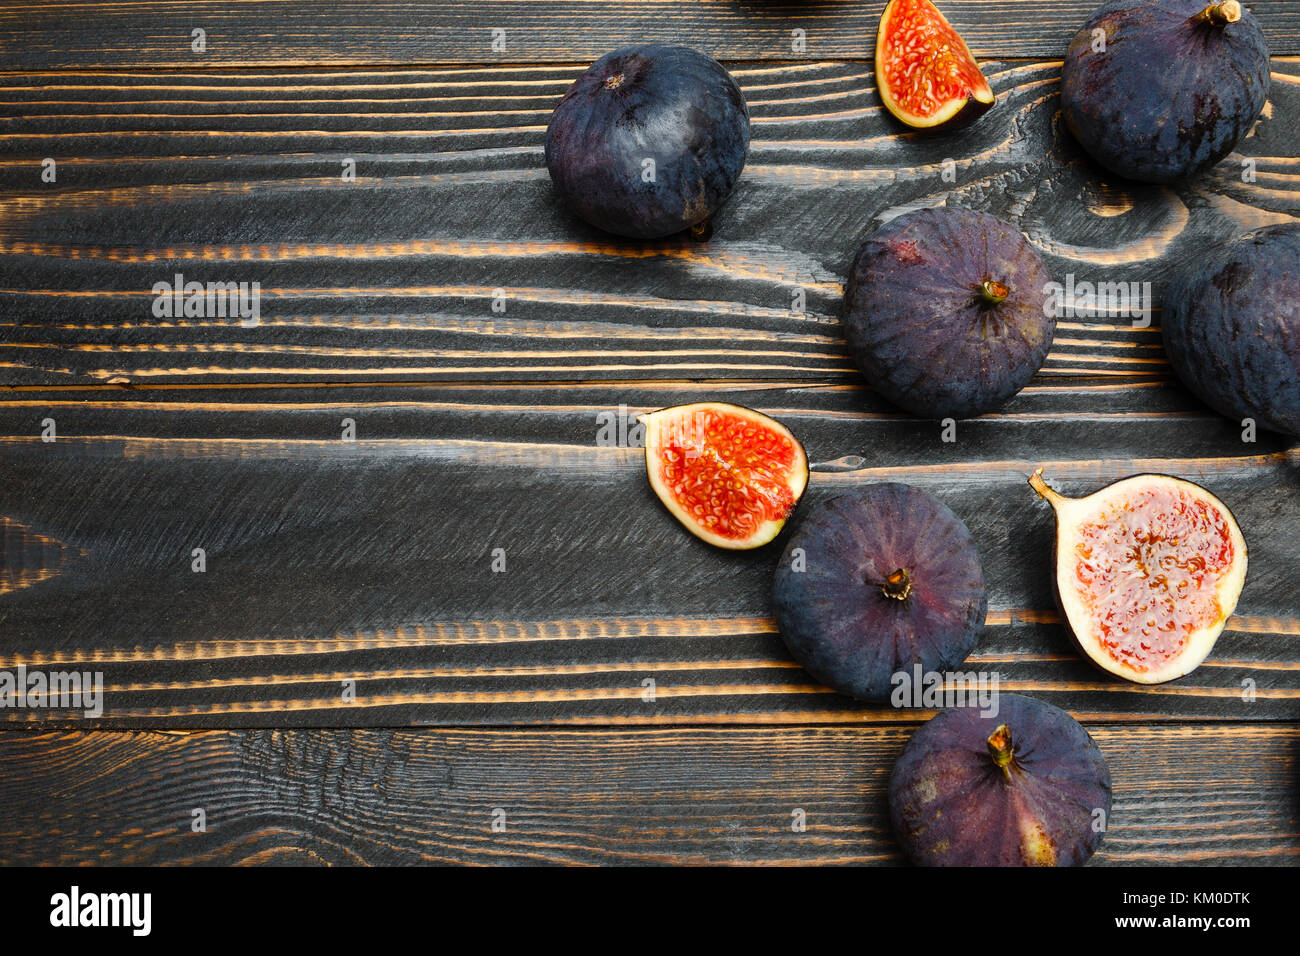 Figs on wooden background - Stock Image